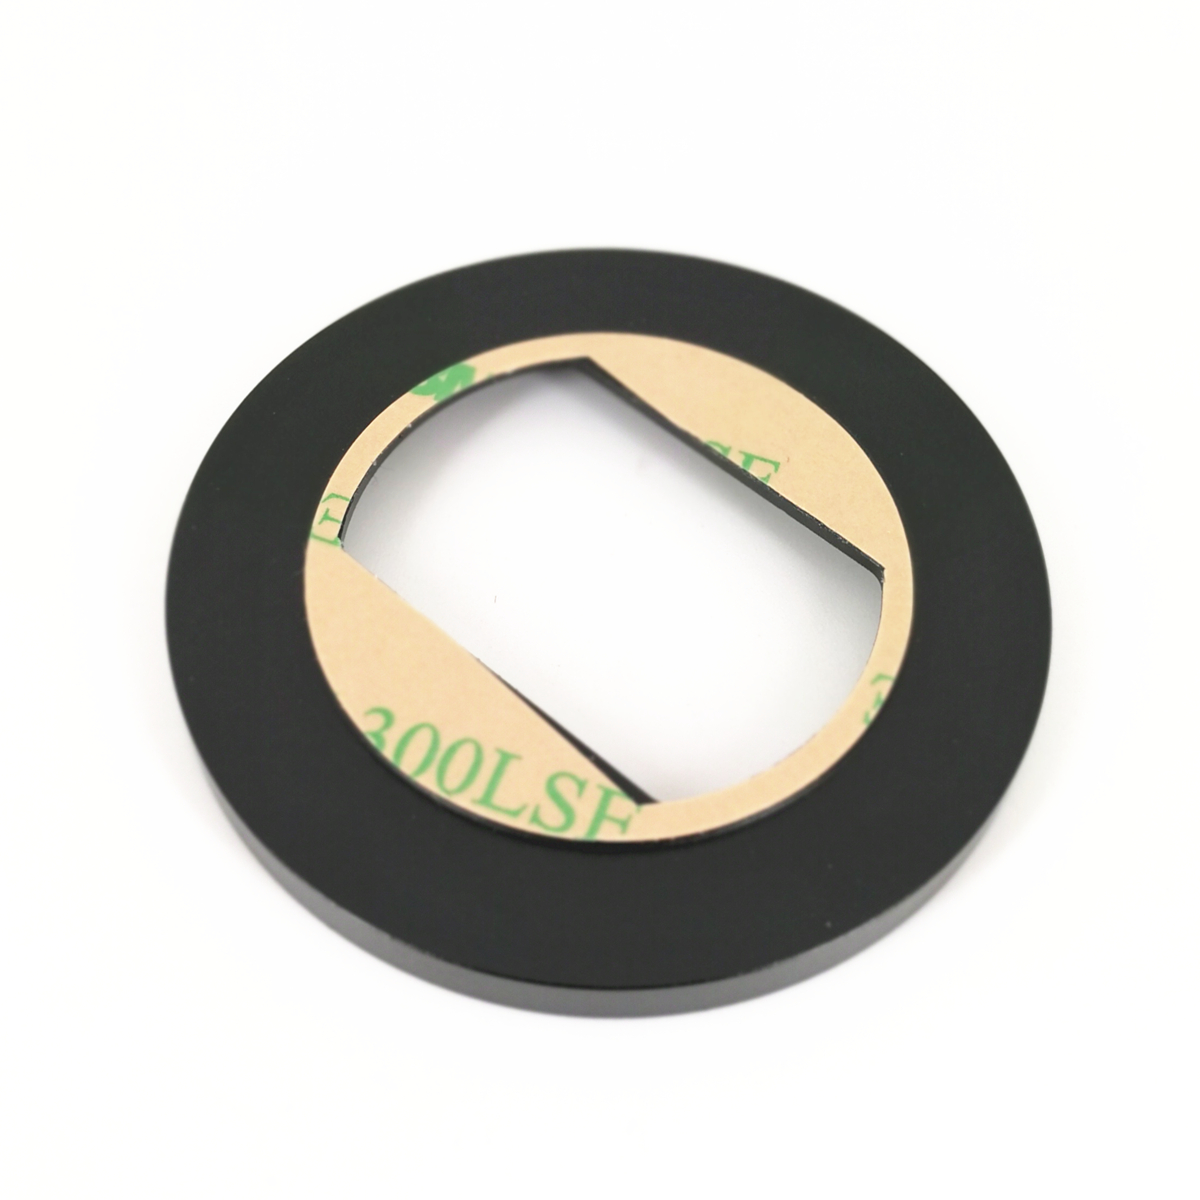 Image 4 - 52mm Metal Filter Adapter Ring + Sticker for Sony RX100M5 / RX100M6 / RX100 V RX100V / RX100 VI RX100VI replace RN RX100VI-in Lens Adapter from Consumer Electronics